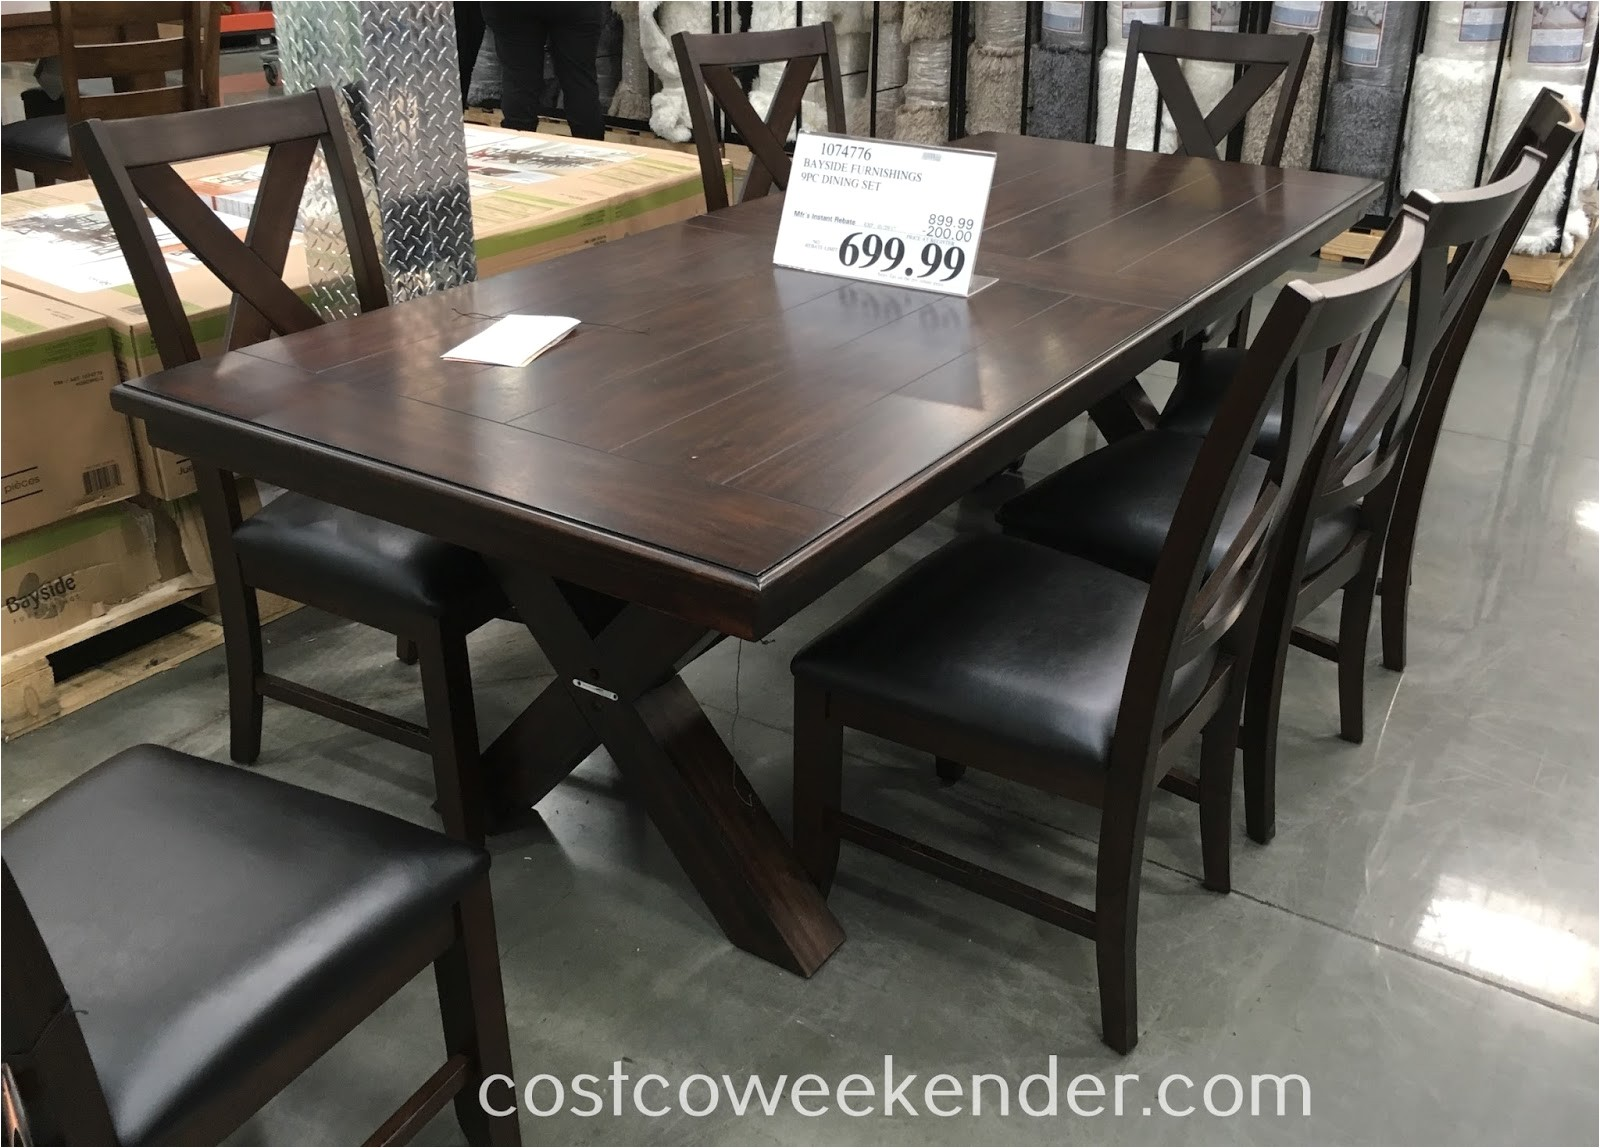 bayside furnishings 9 piece dining set costco 1074776